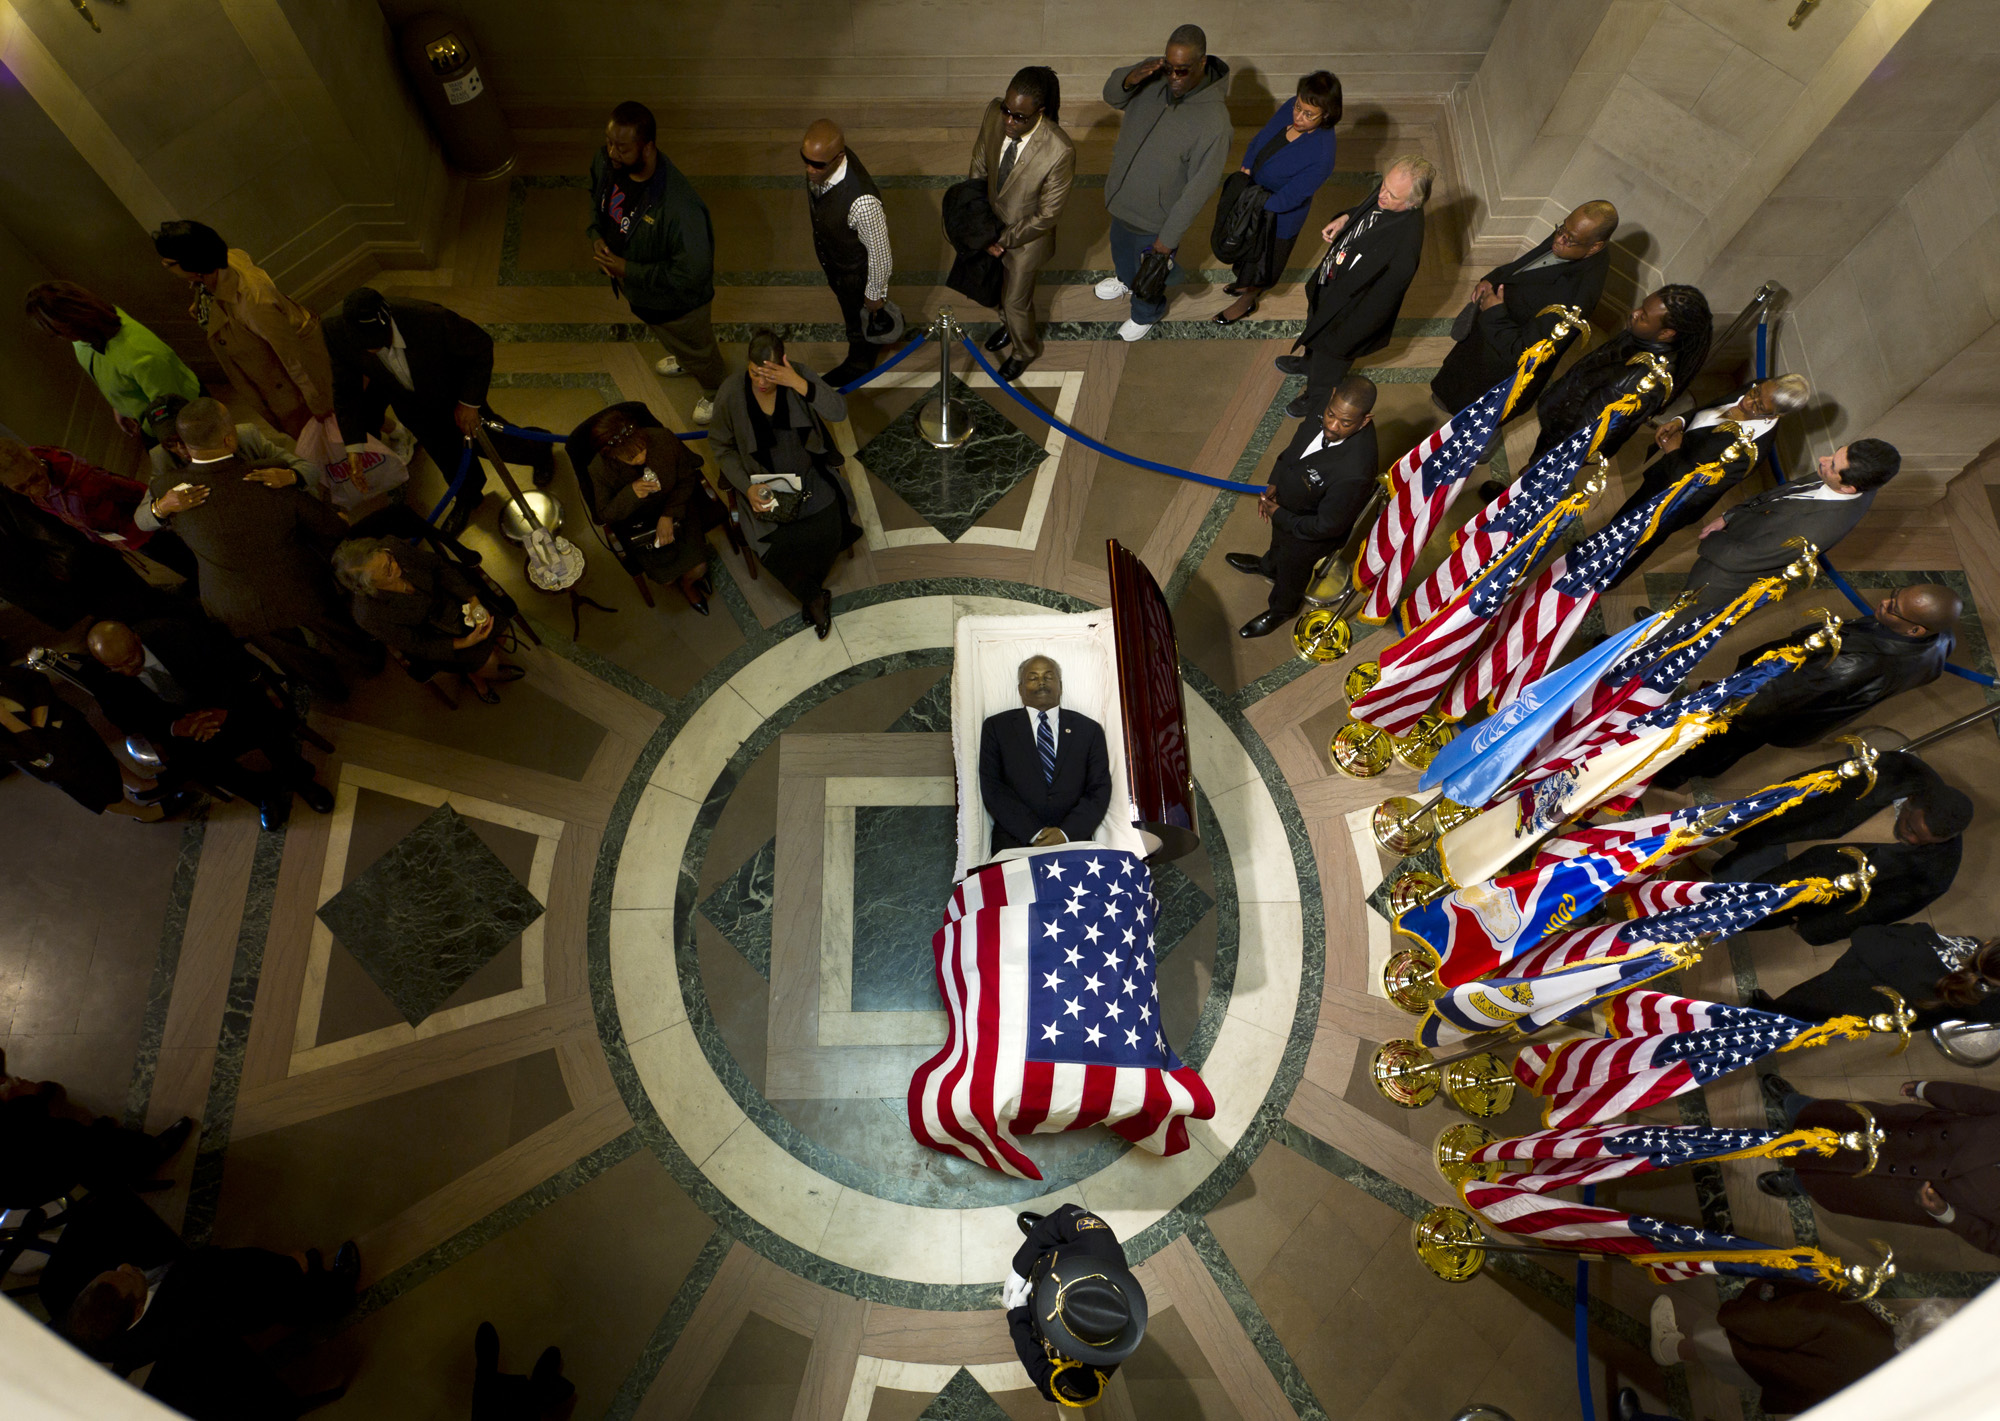 U.S. Representative Donald Payne in the Rotunda of the Hall of Records, Newark, NJ.  Photographed for The New York Times